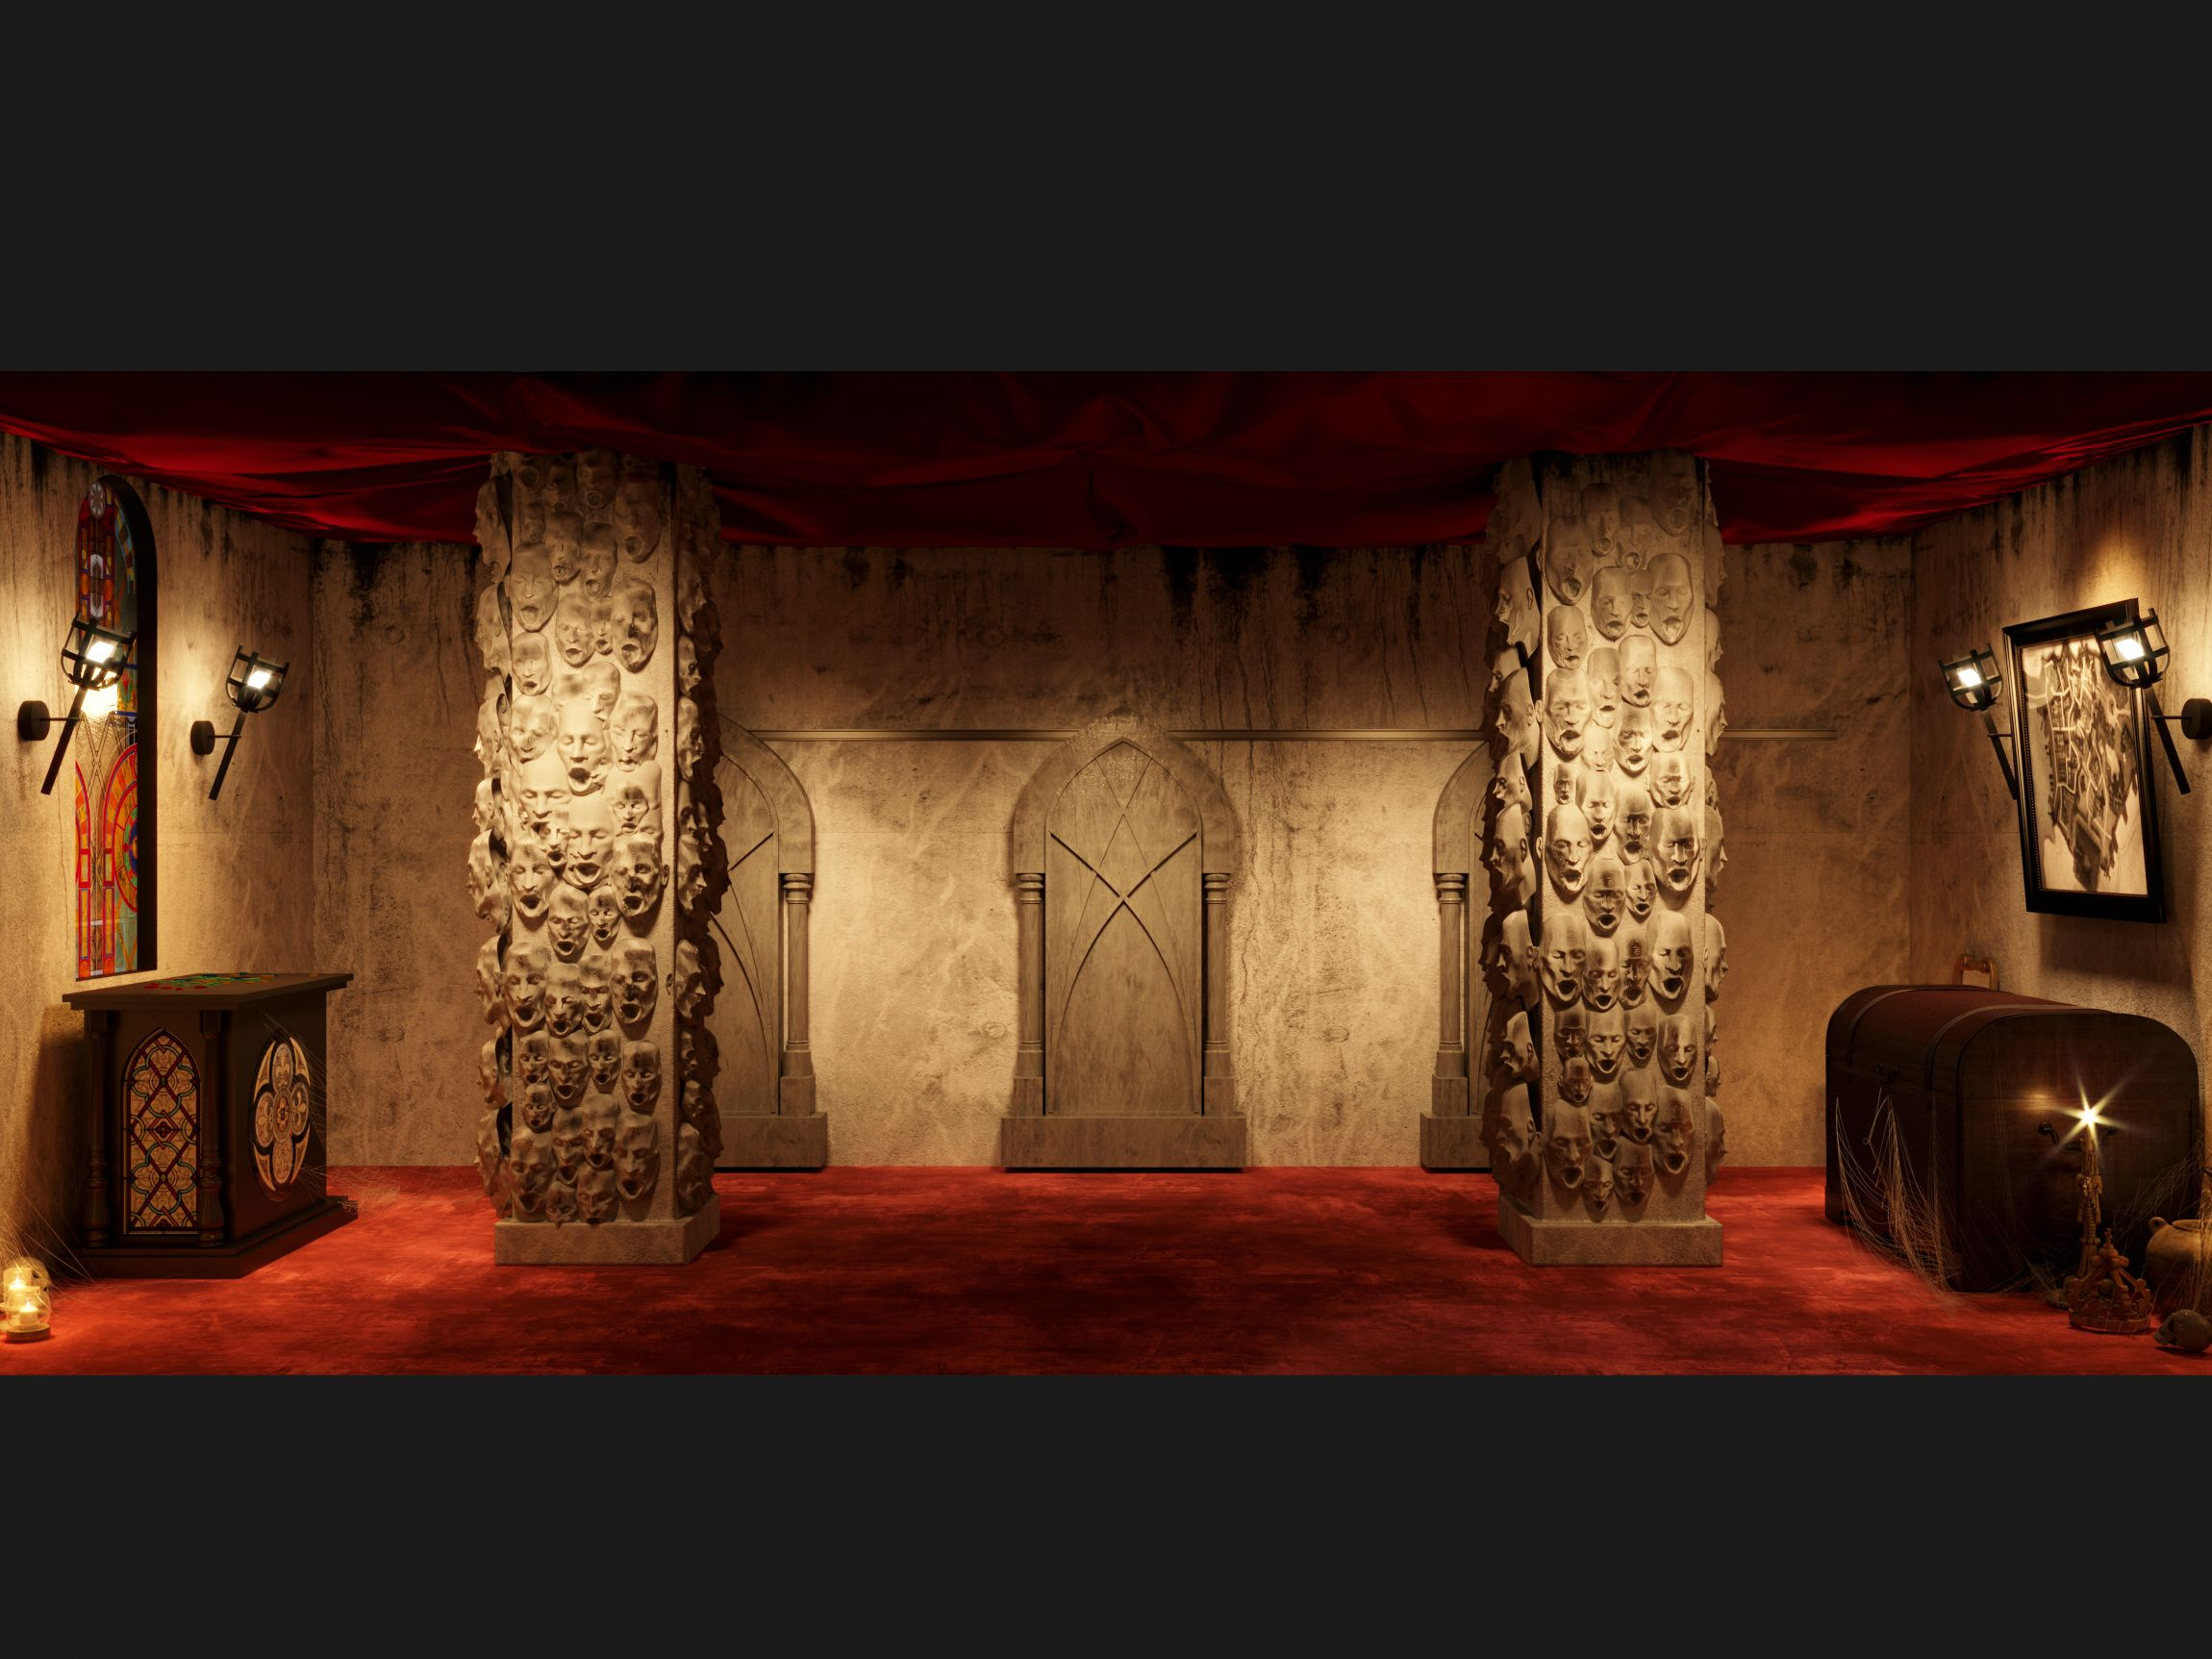 3dvisualization for vampire slayers escape room by a